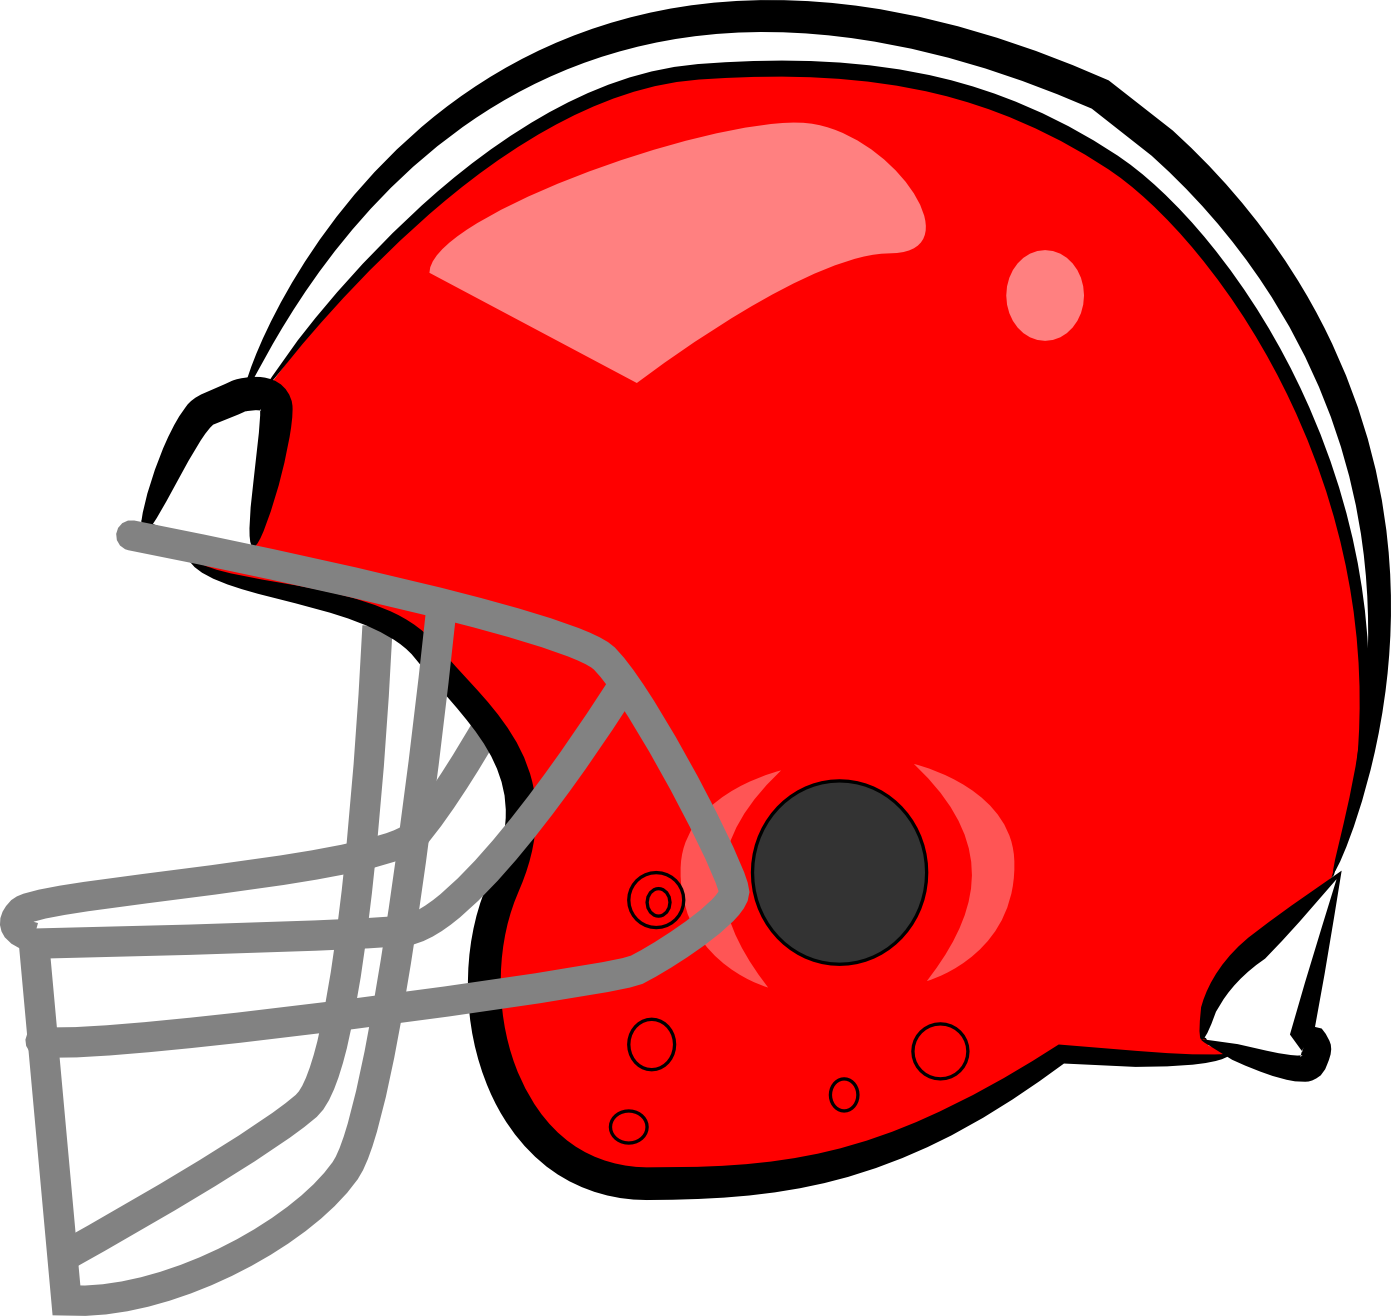 American Football Helmets Clip art - american football